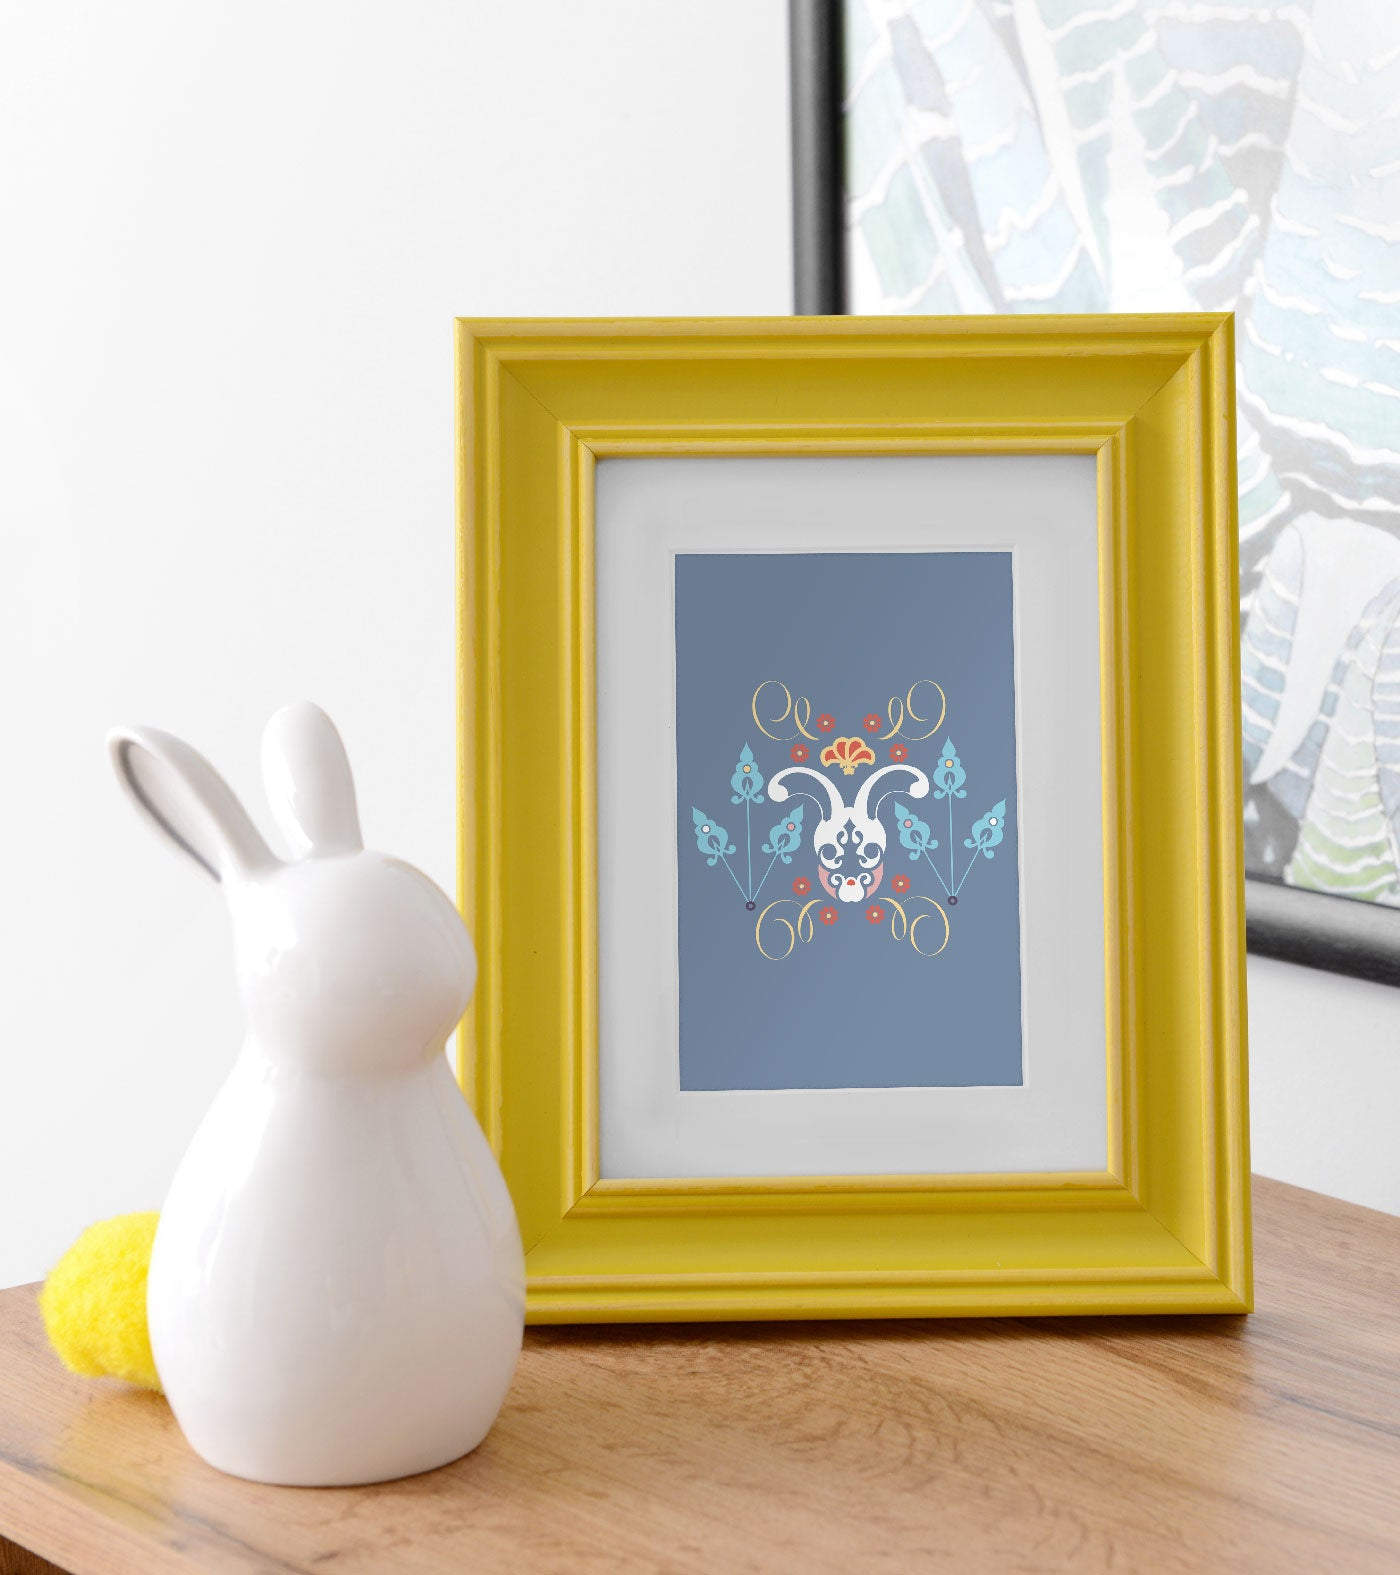 Our limited-edition small cards can be framed to create beautiful, intimate corners.